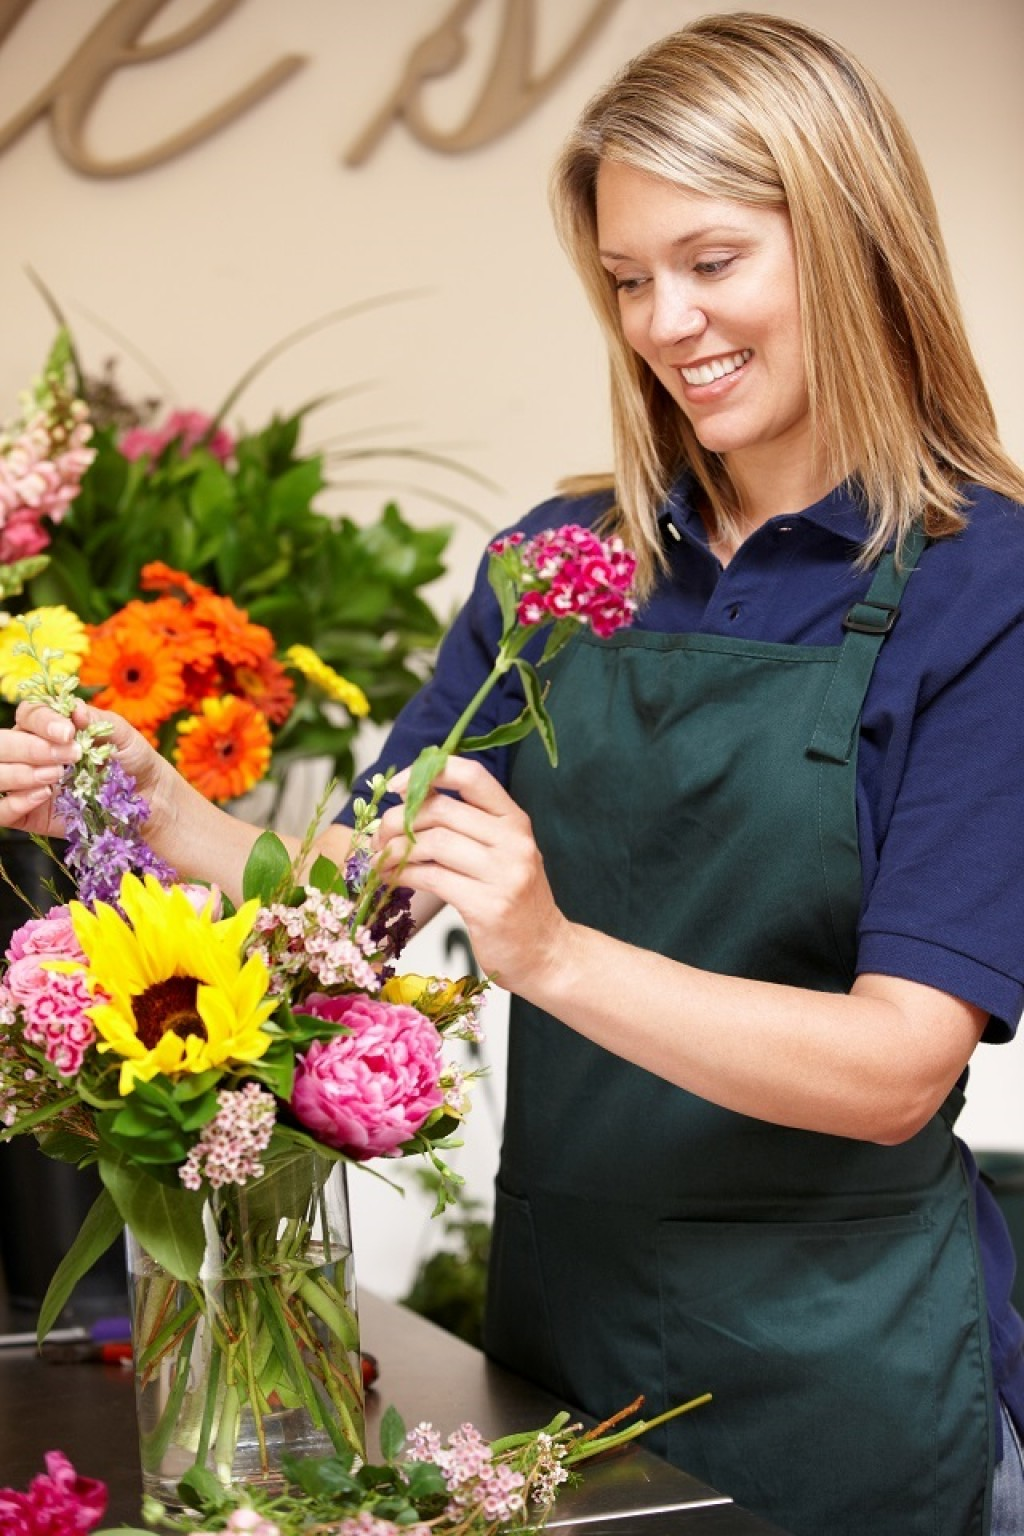 Premier Flower shop and Catering Company